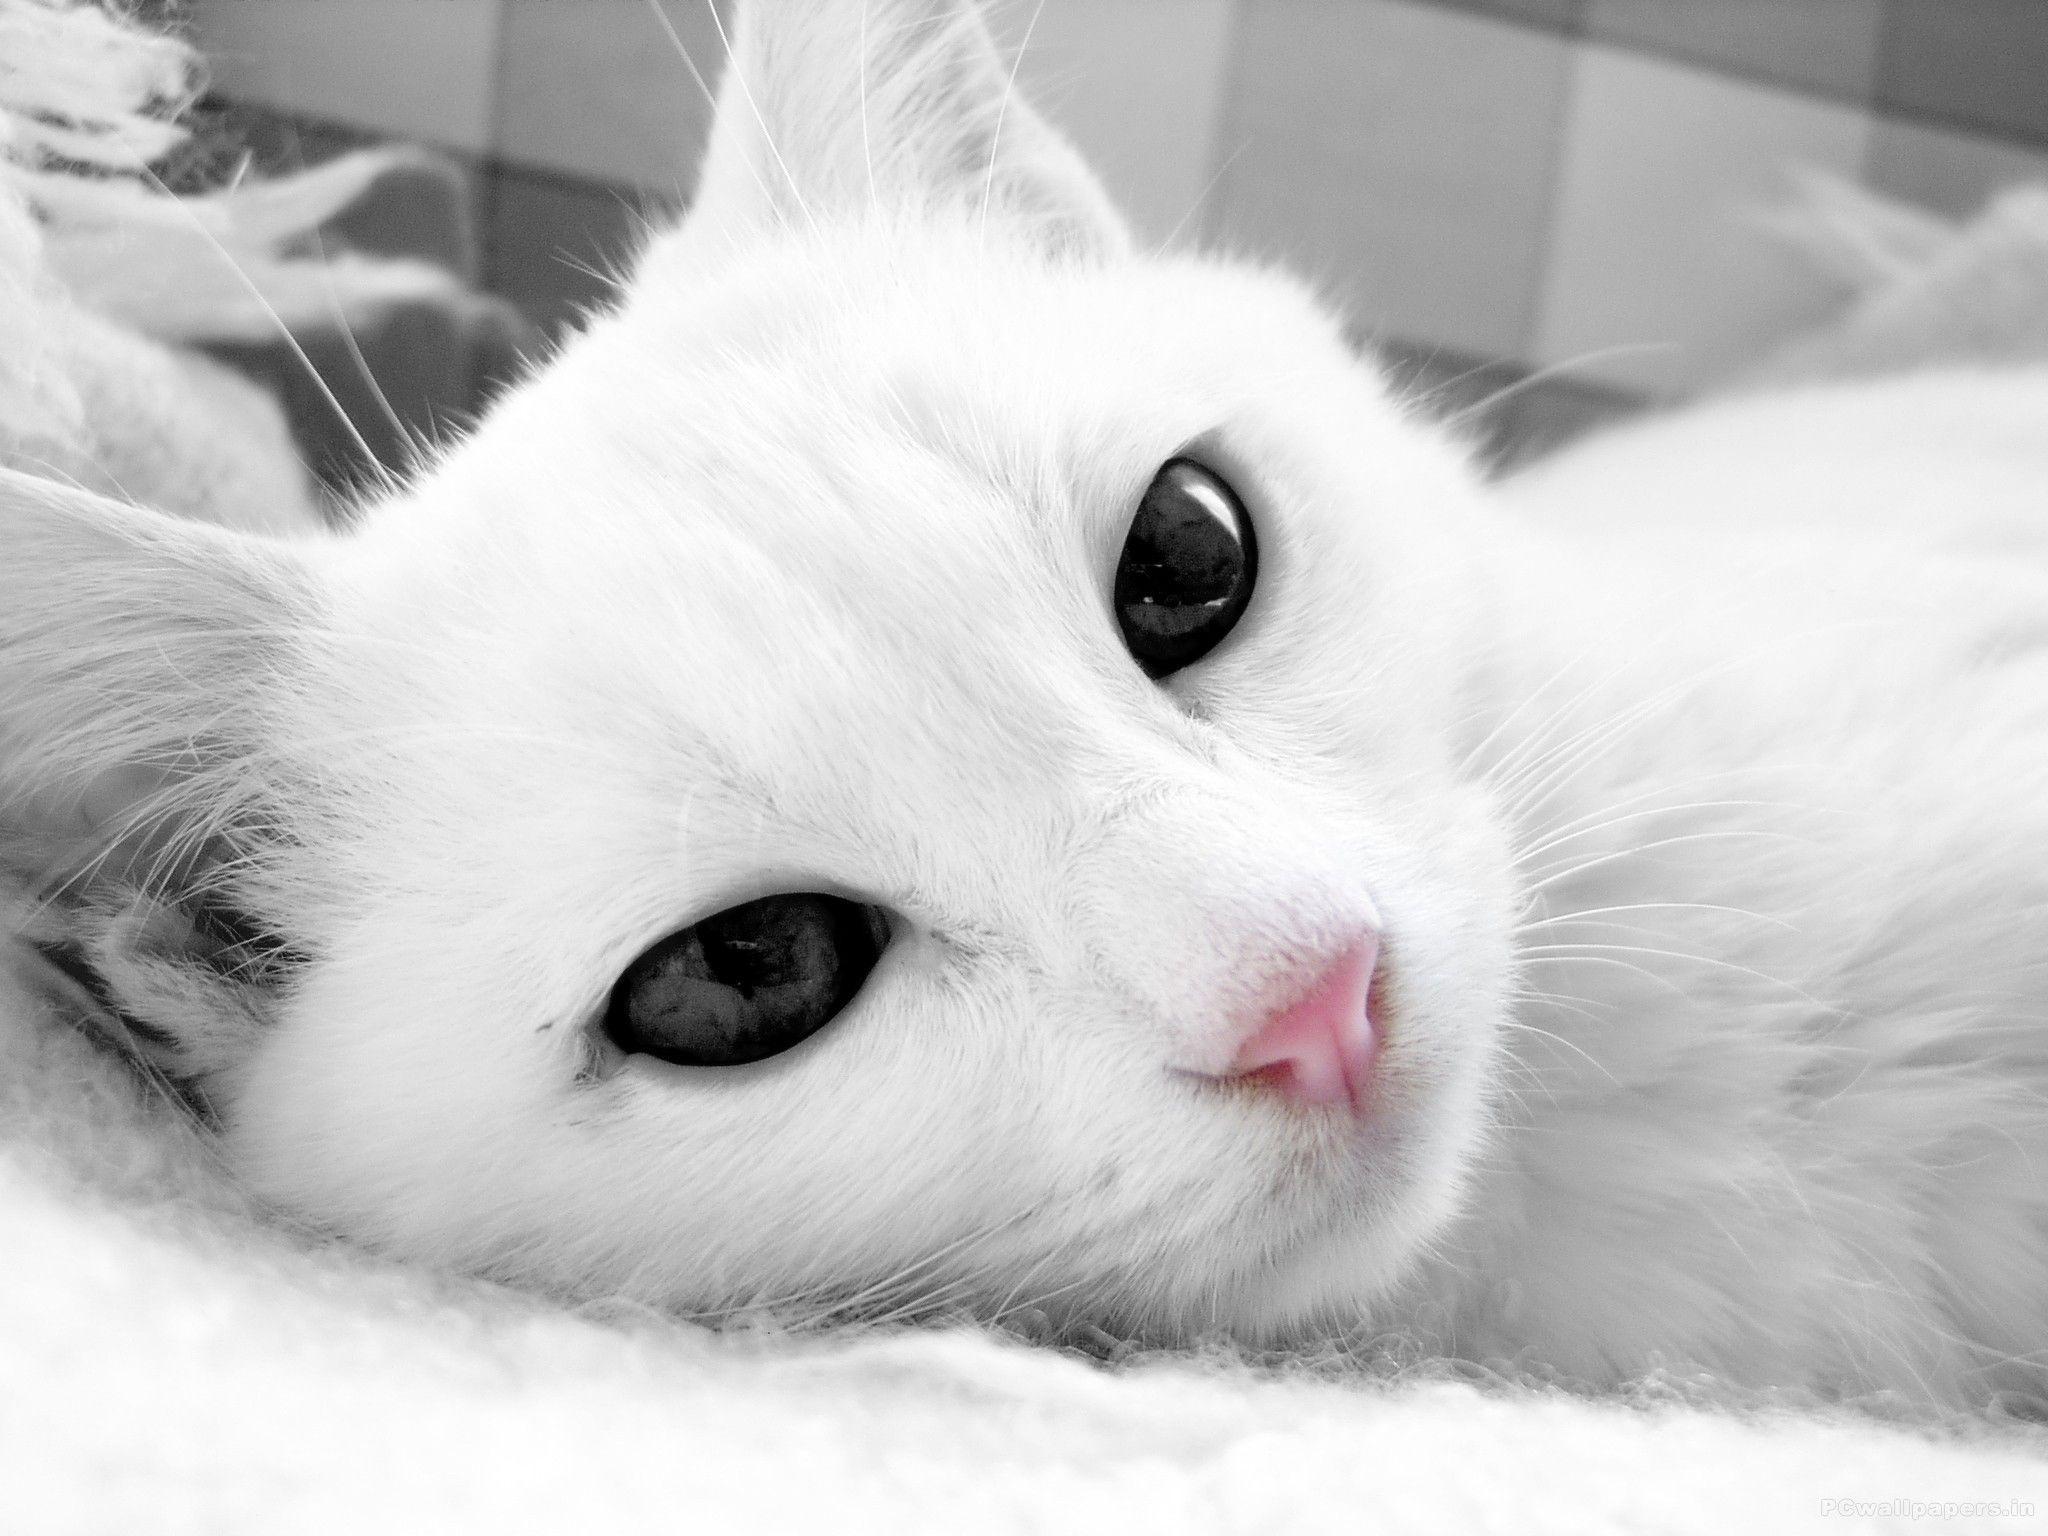 White cat with dark eyes close up wallpapers and images